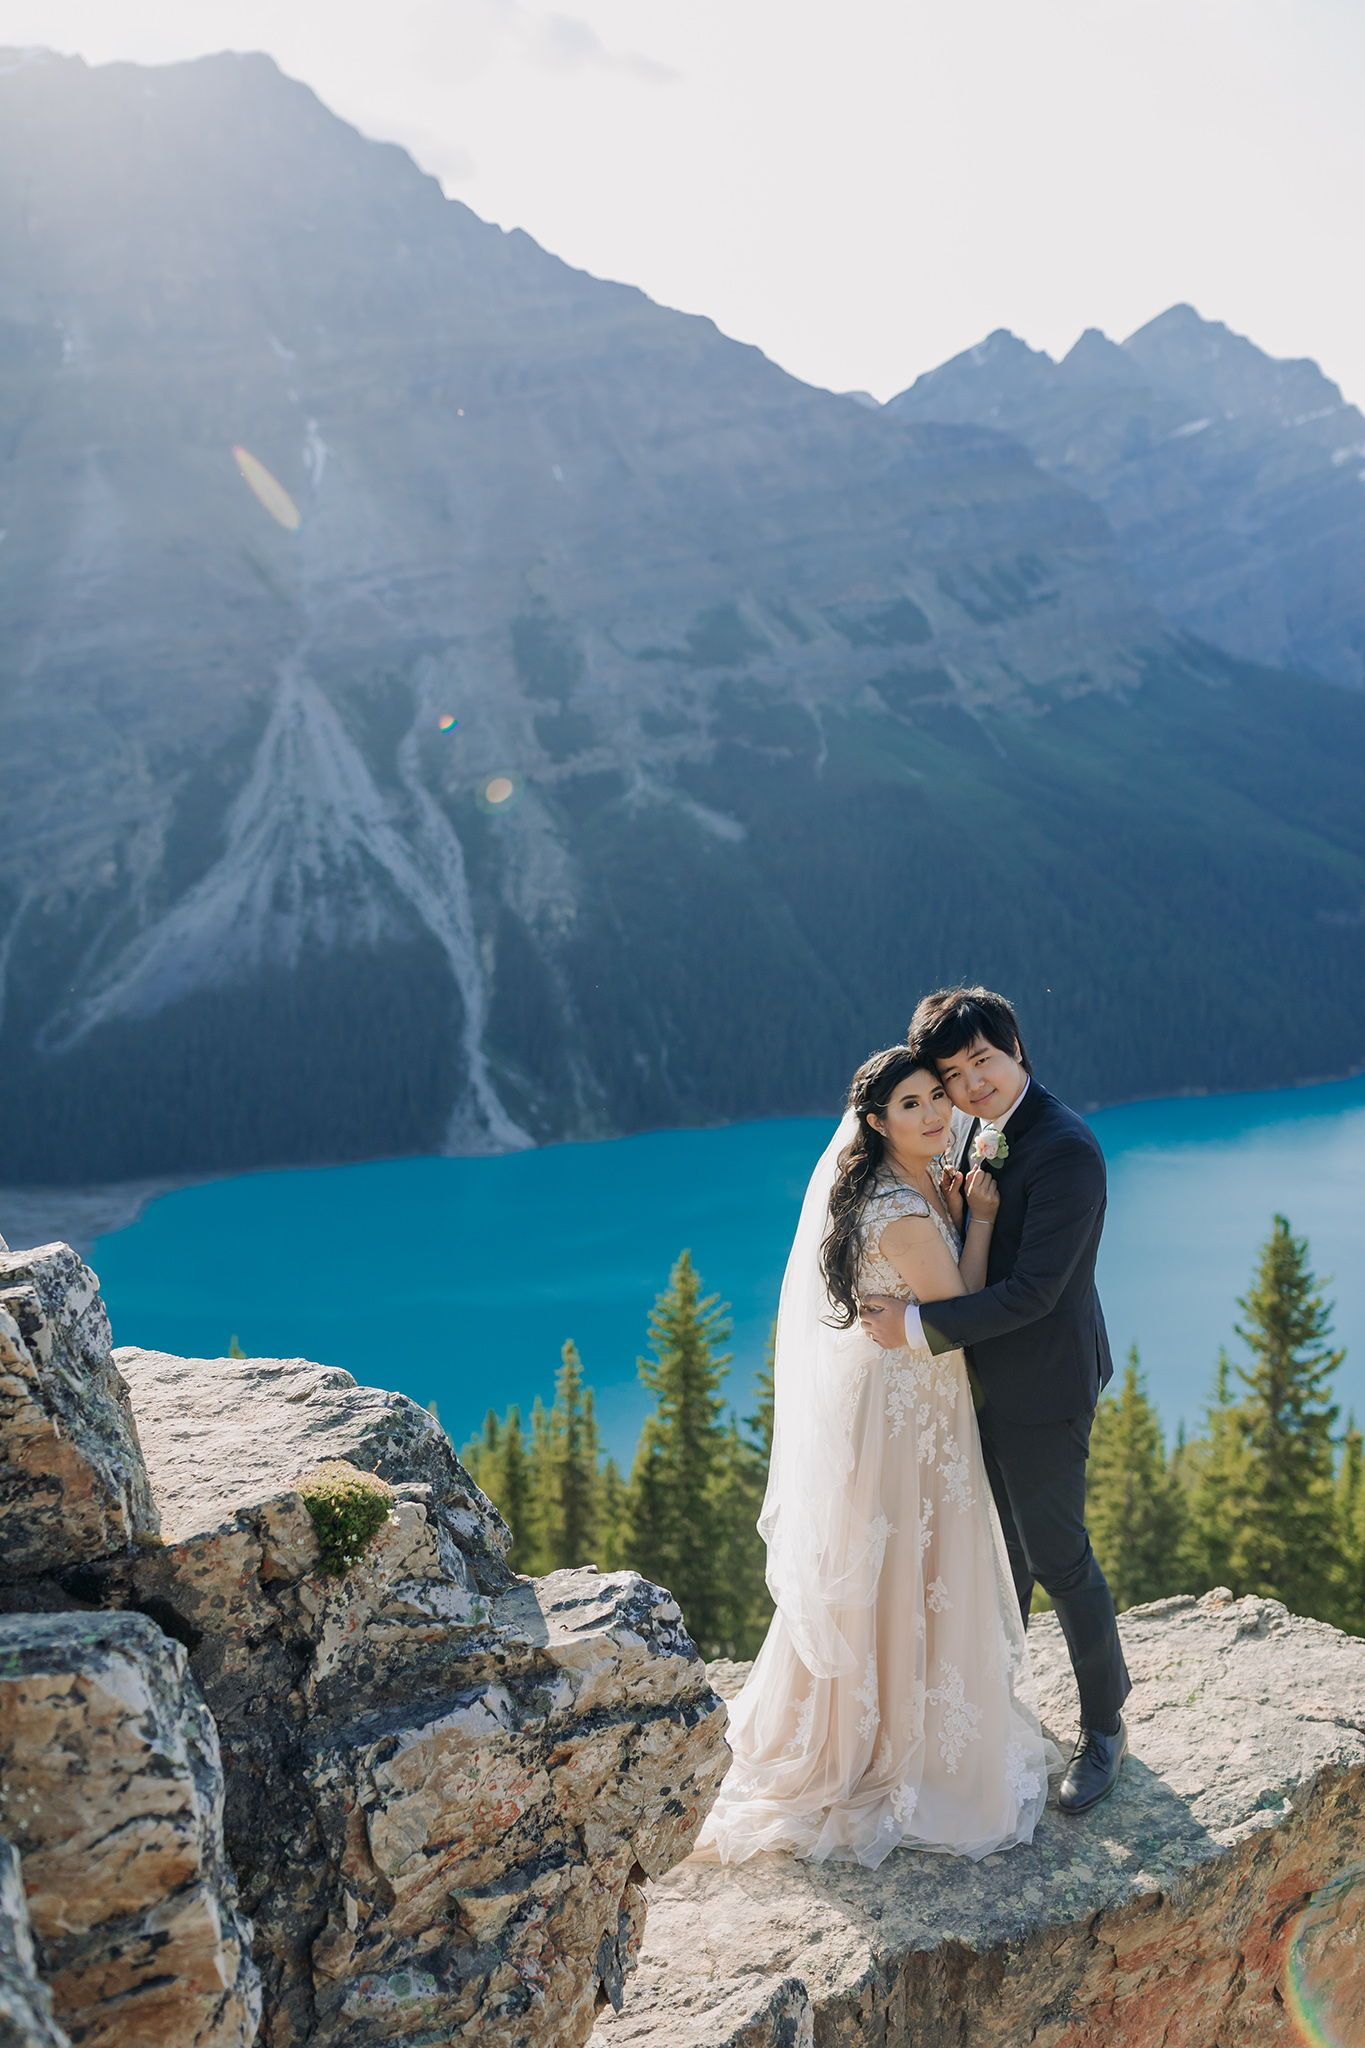 Pin on Icefields Parkway Weddings, Elopements & etc.